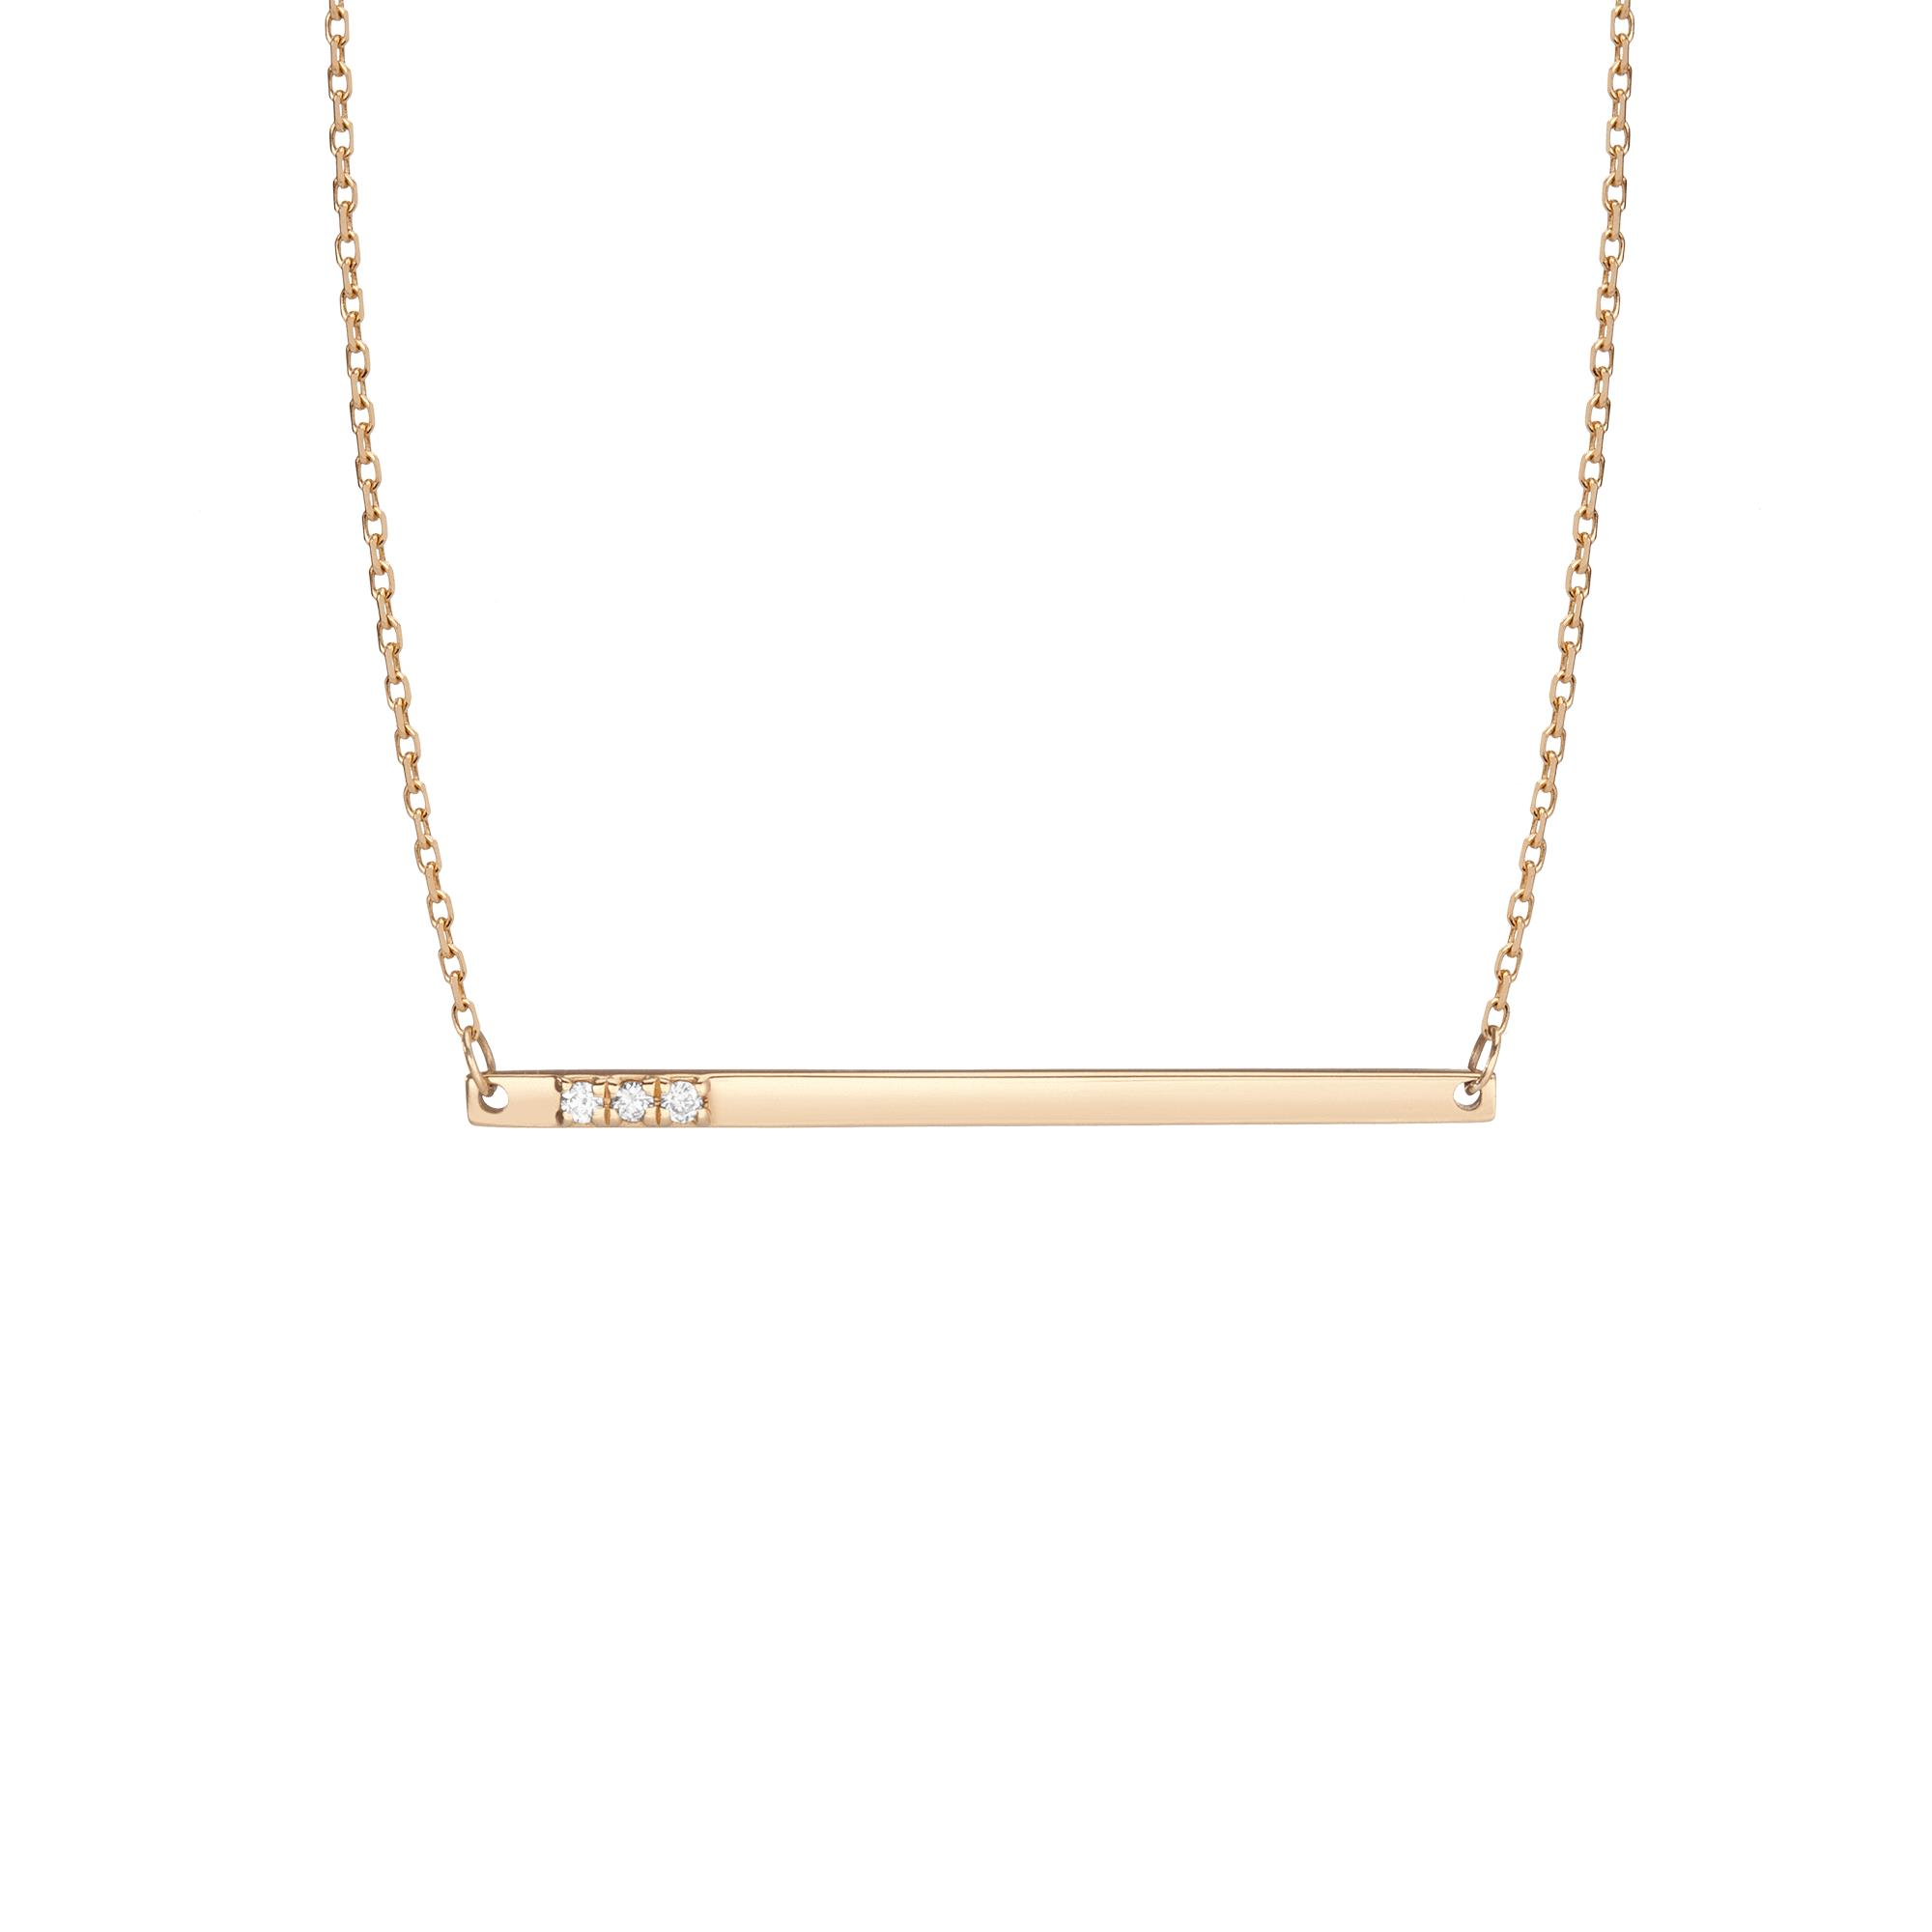 Gold Bar Necklace With Diamonds in Yellow, Rose or White Gold